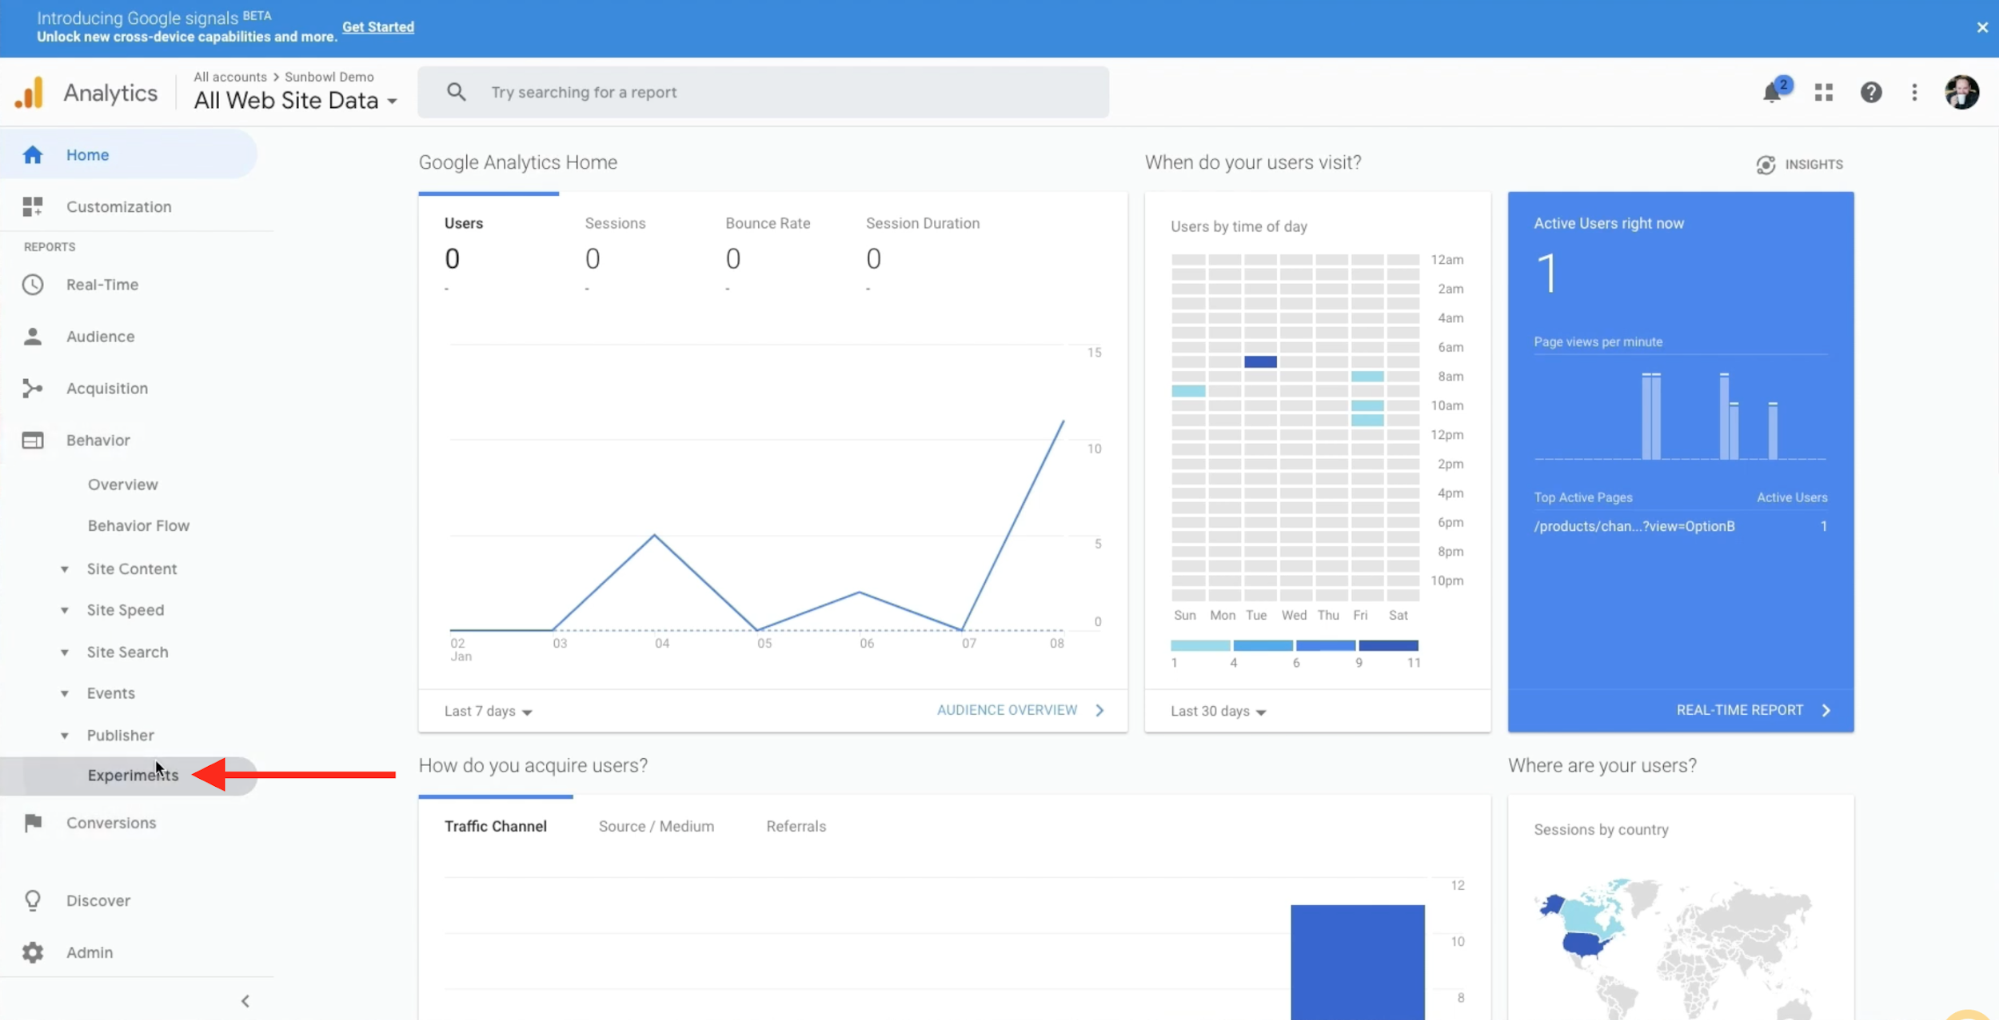 Merchant is setting up a behaviour experiment within the Google Analytics dashboard